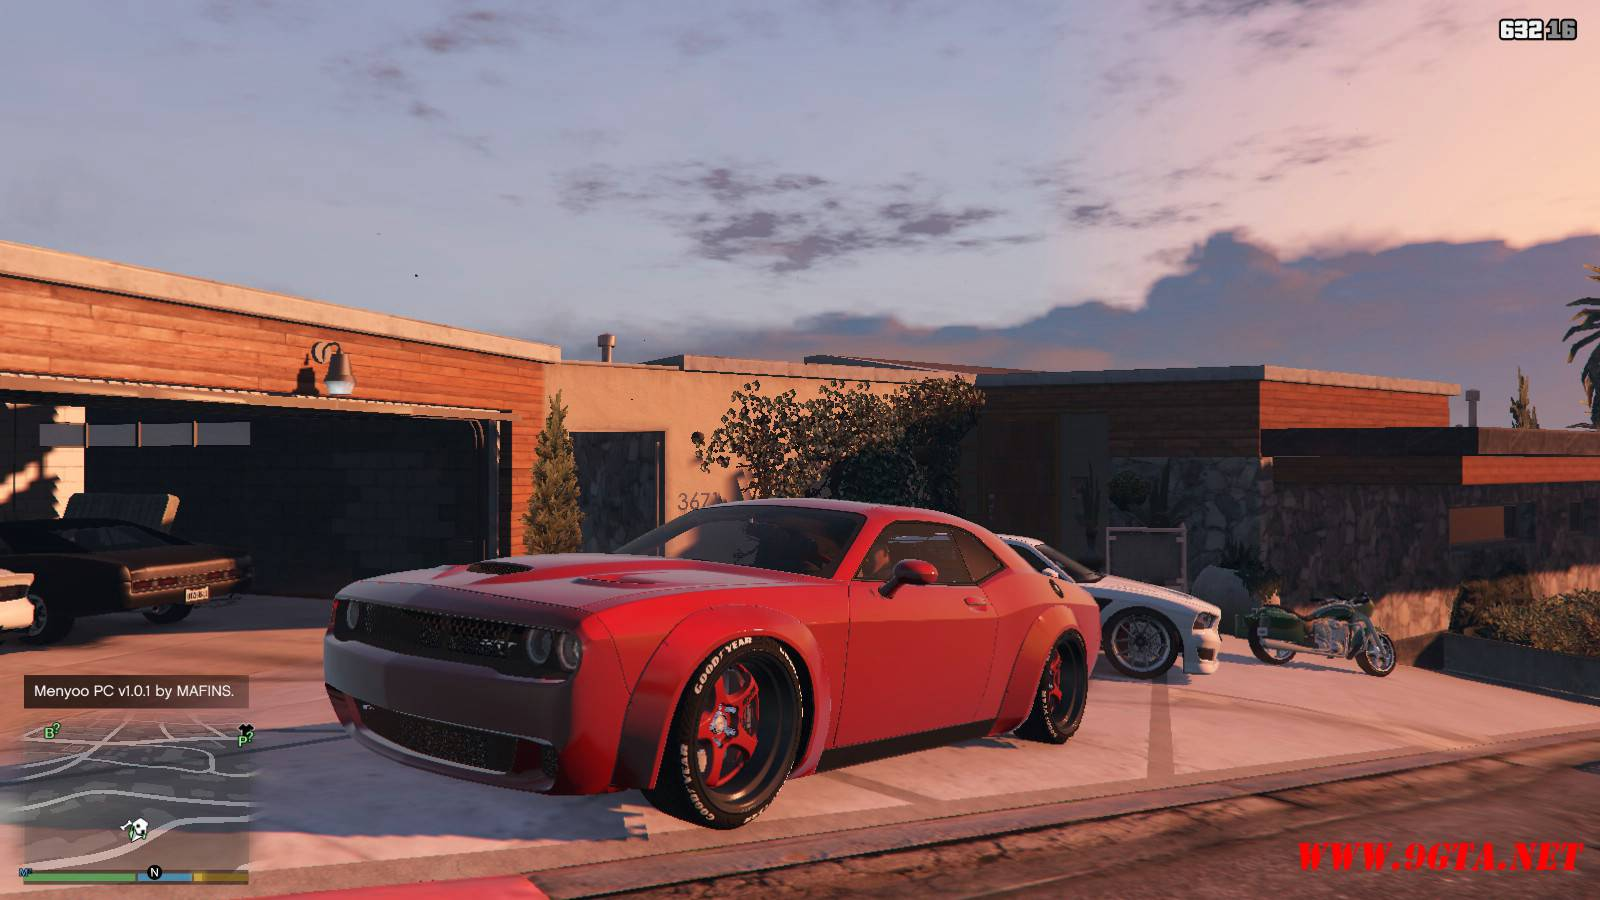 2018 Dodge Challenger SRT Demon v1.4 Mod For GTA5 (1)